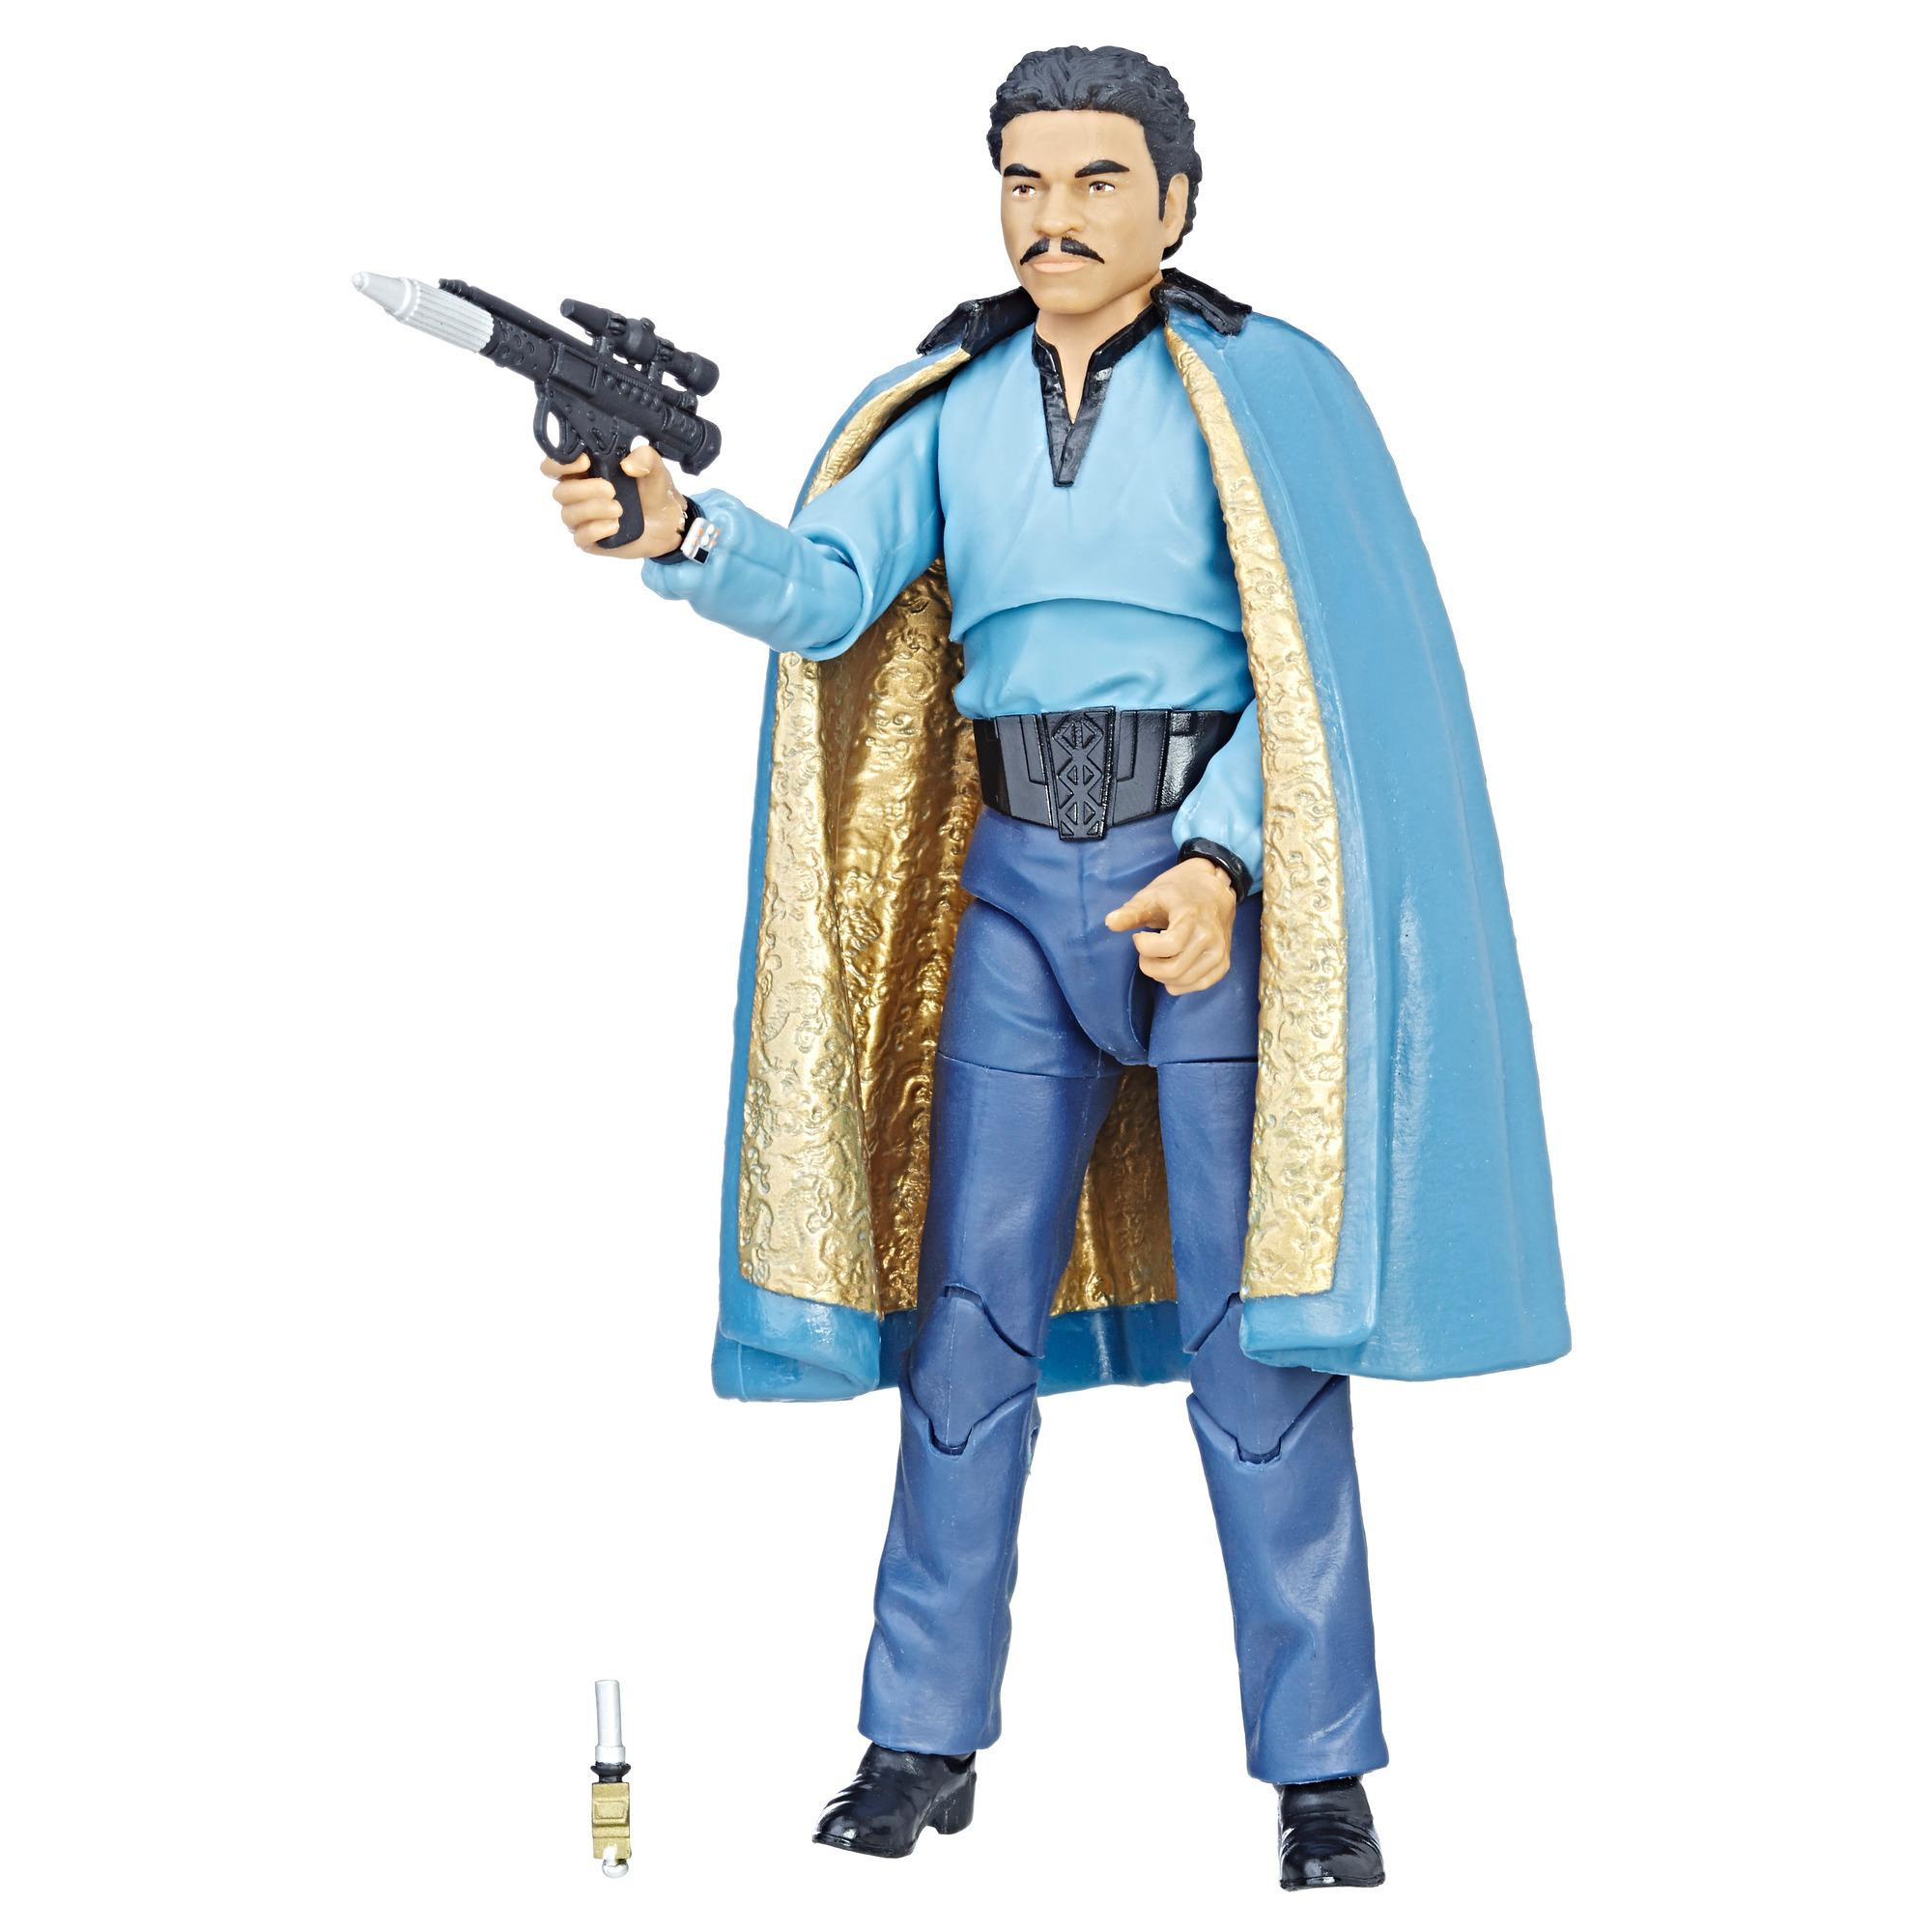 STAR WARS E5 LANDO CALRISSIAN